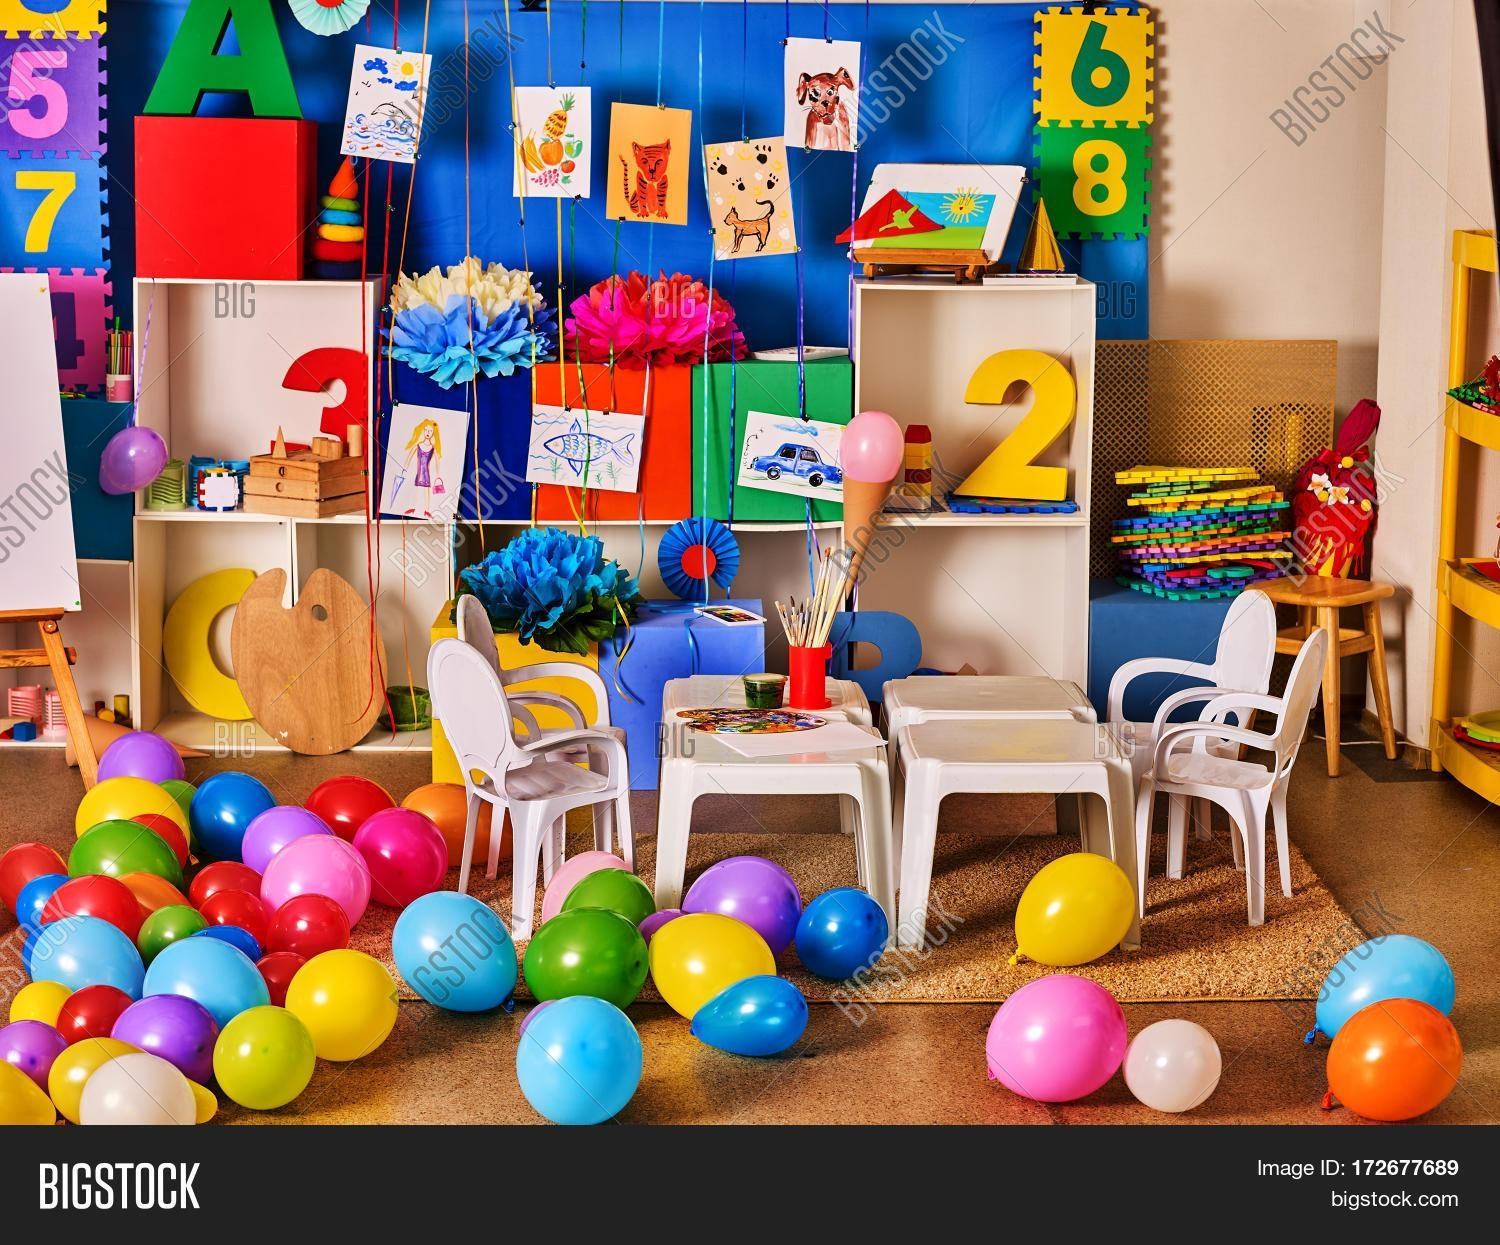 Kindergarten Interior Decoration Child Picture On Wall (Image 11 of 20)